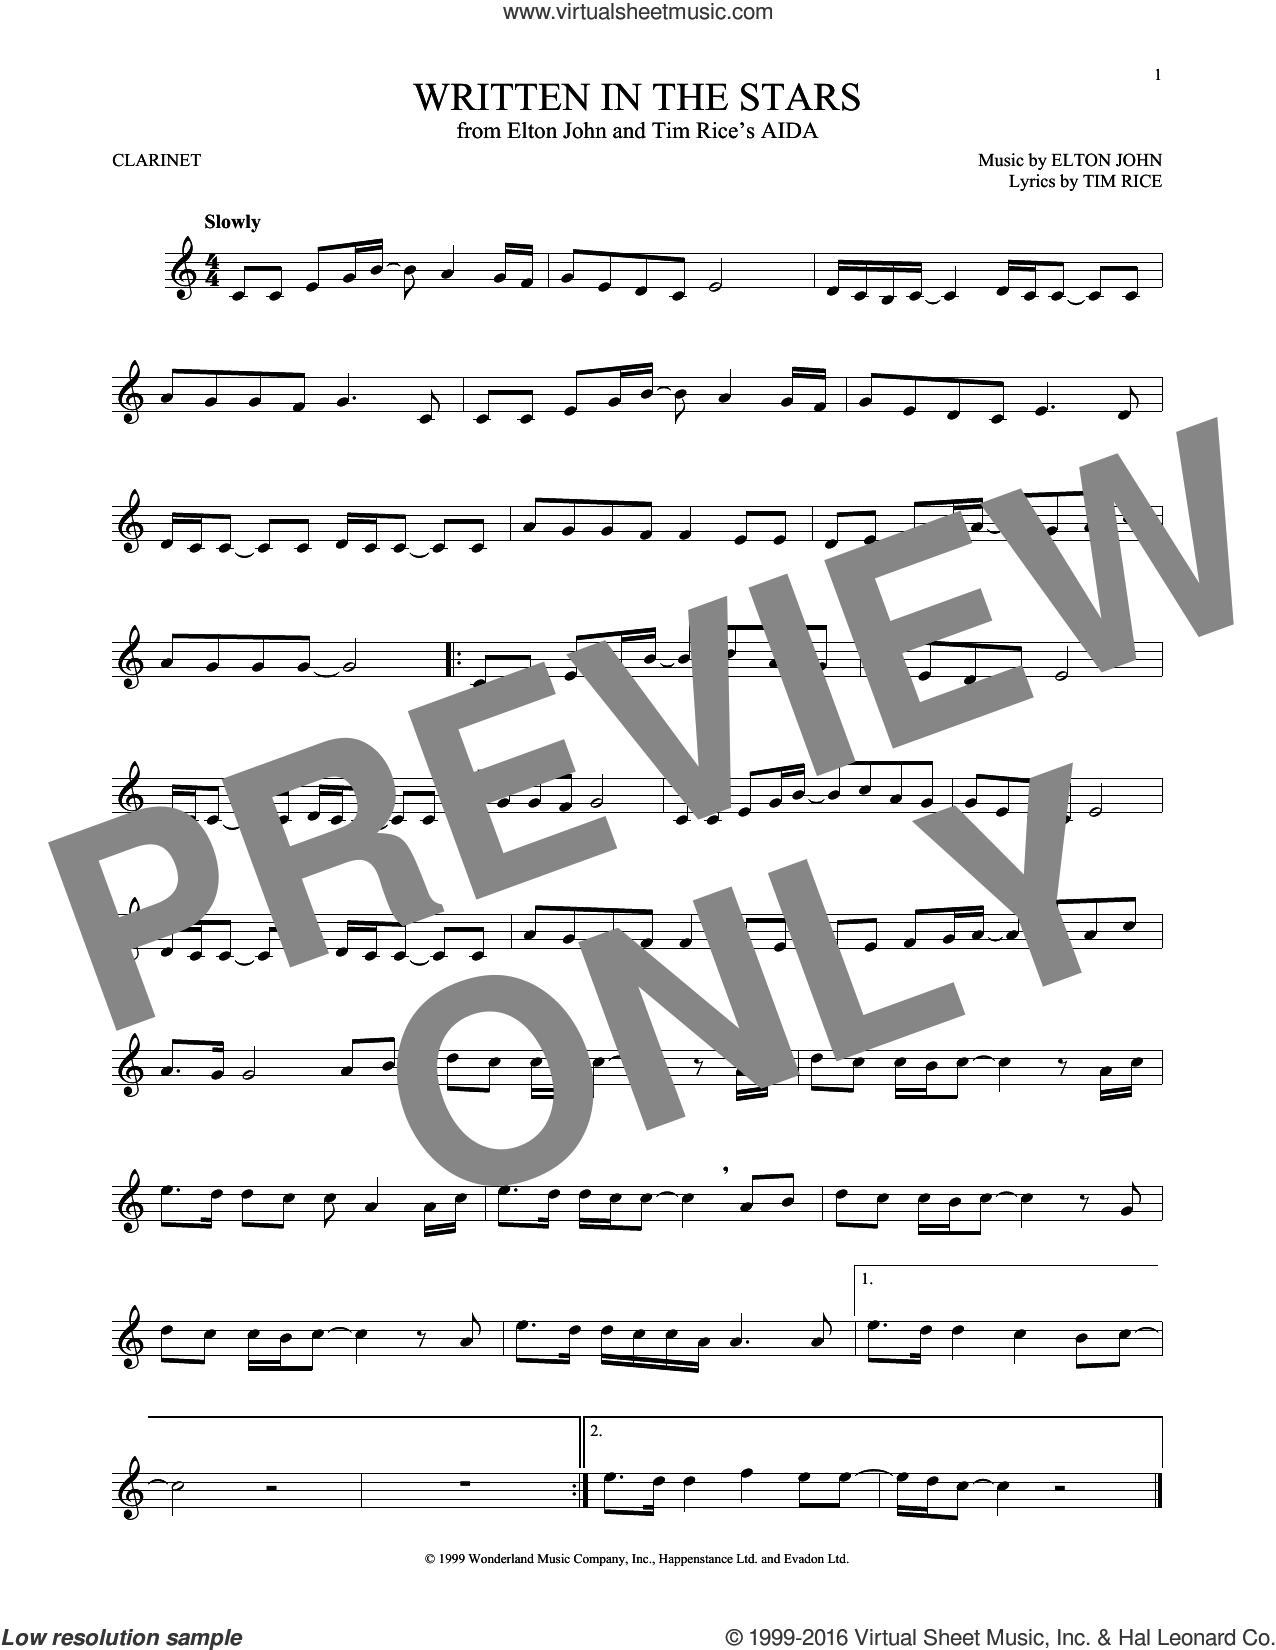 Written In The Stars sheet music for clarinet solo by Elton John and Tim Rice, intermediate skill level